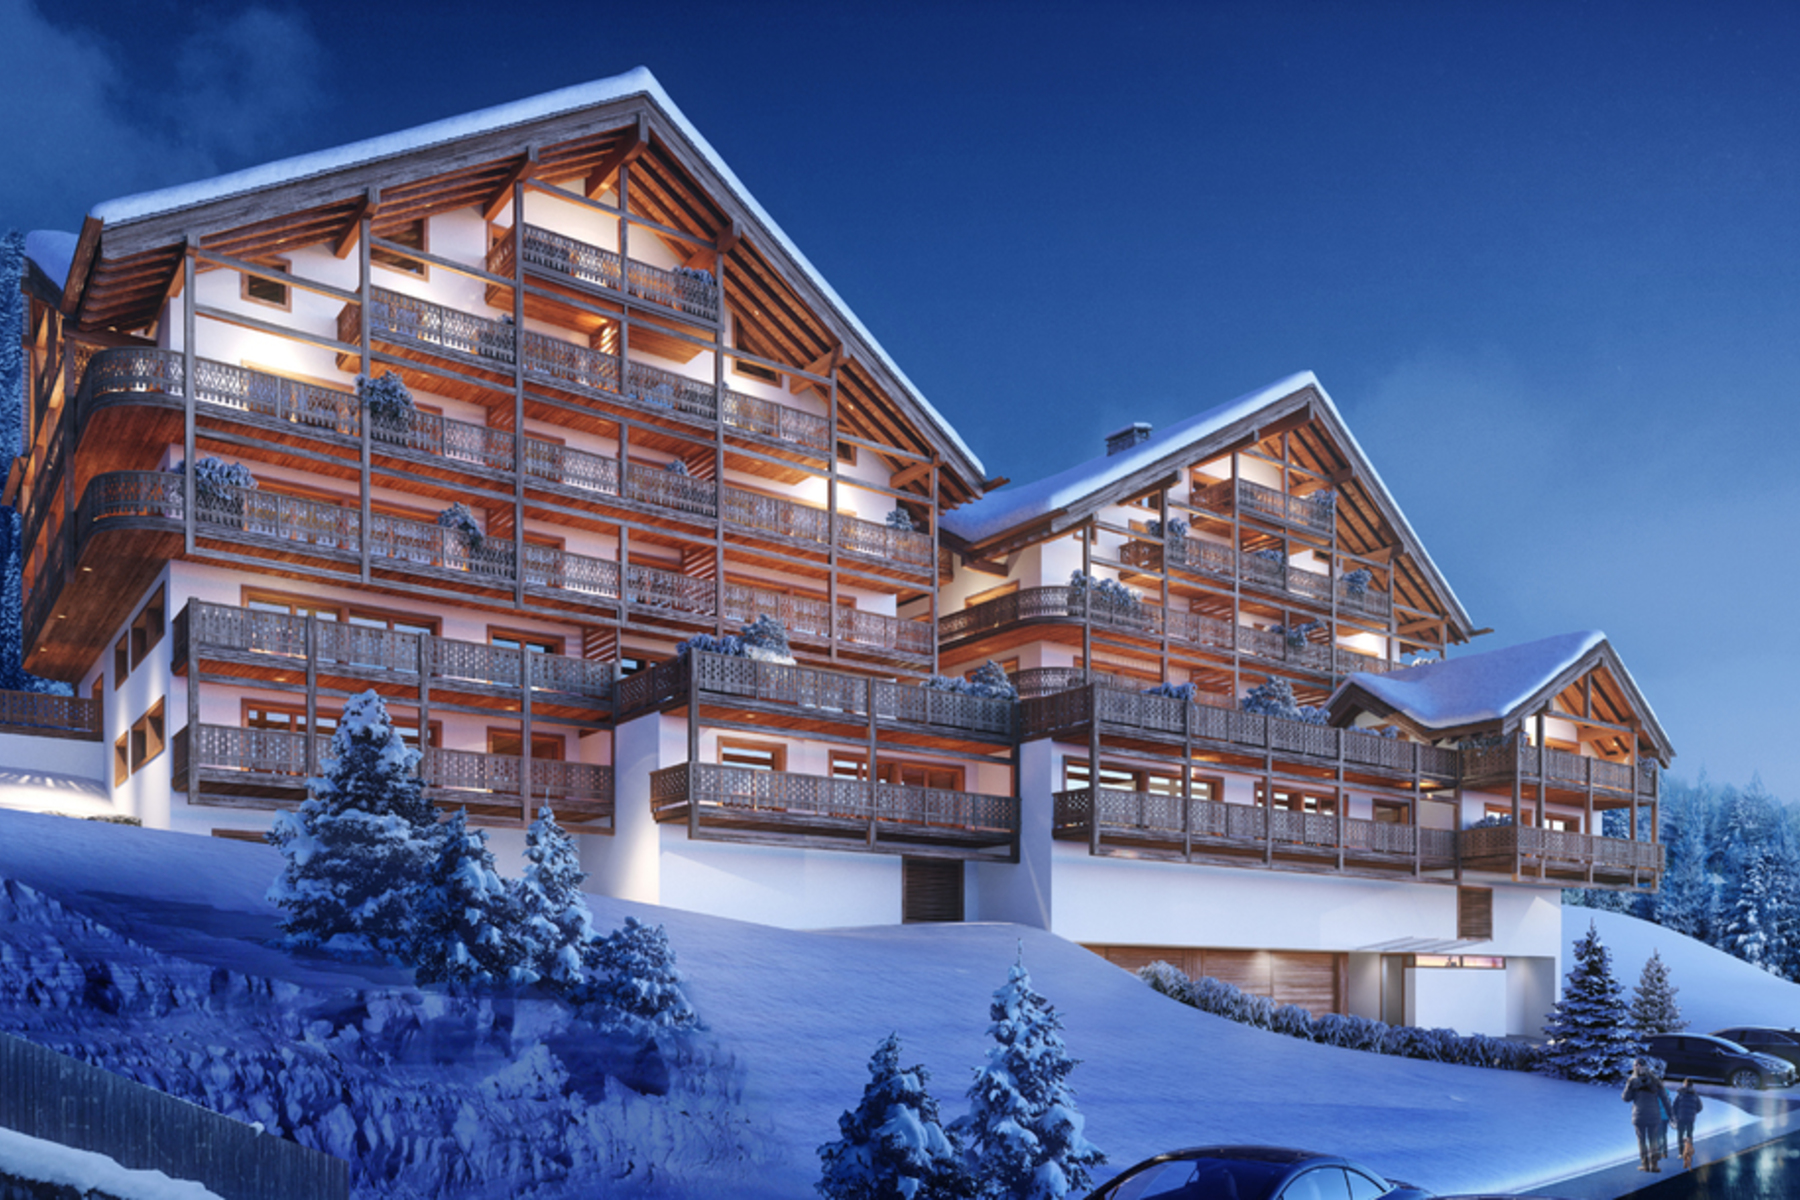 Apartamento por un Venta en Résidence Le Montagnier - New-build apartment with amazing views Champéry Champery, Valais, 1874 Suiza